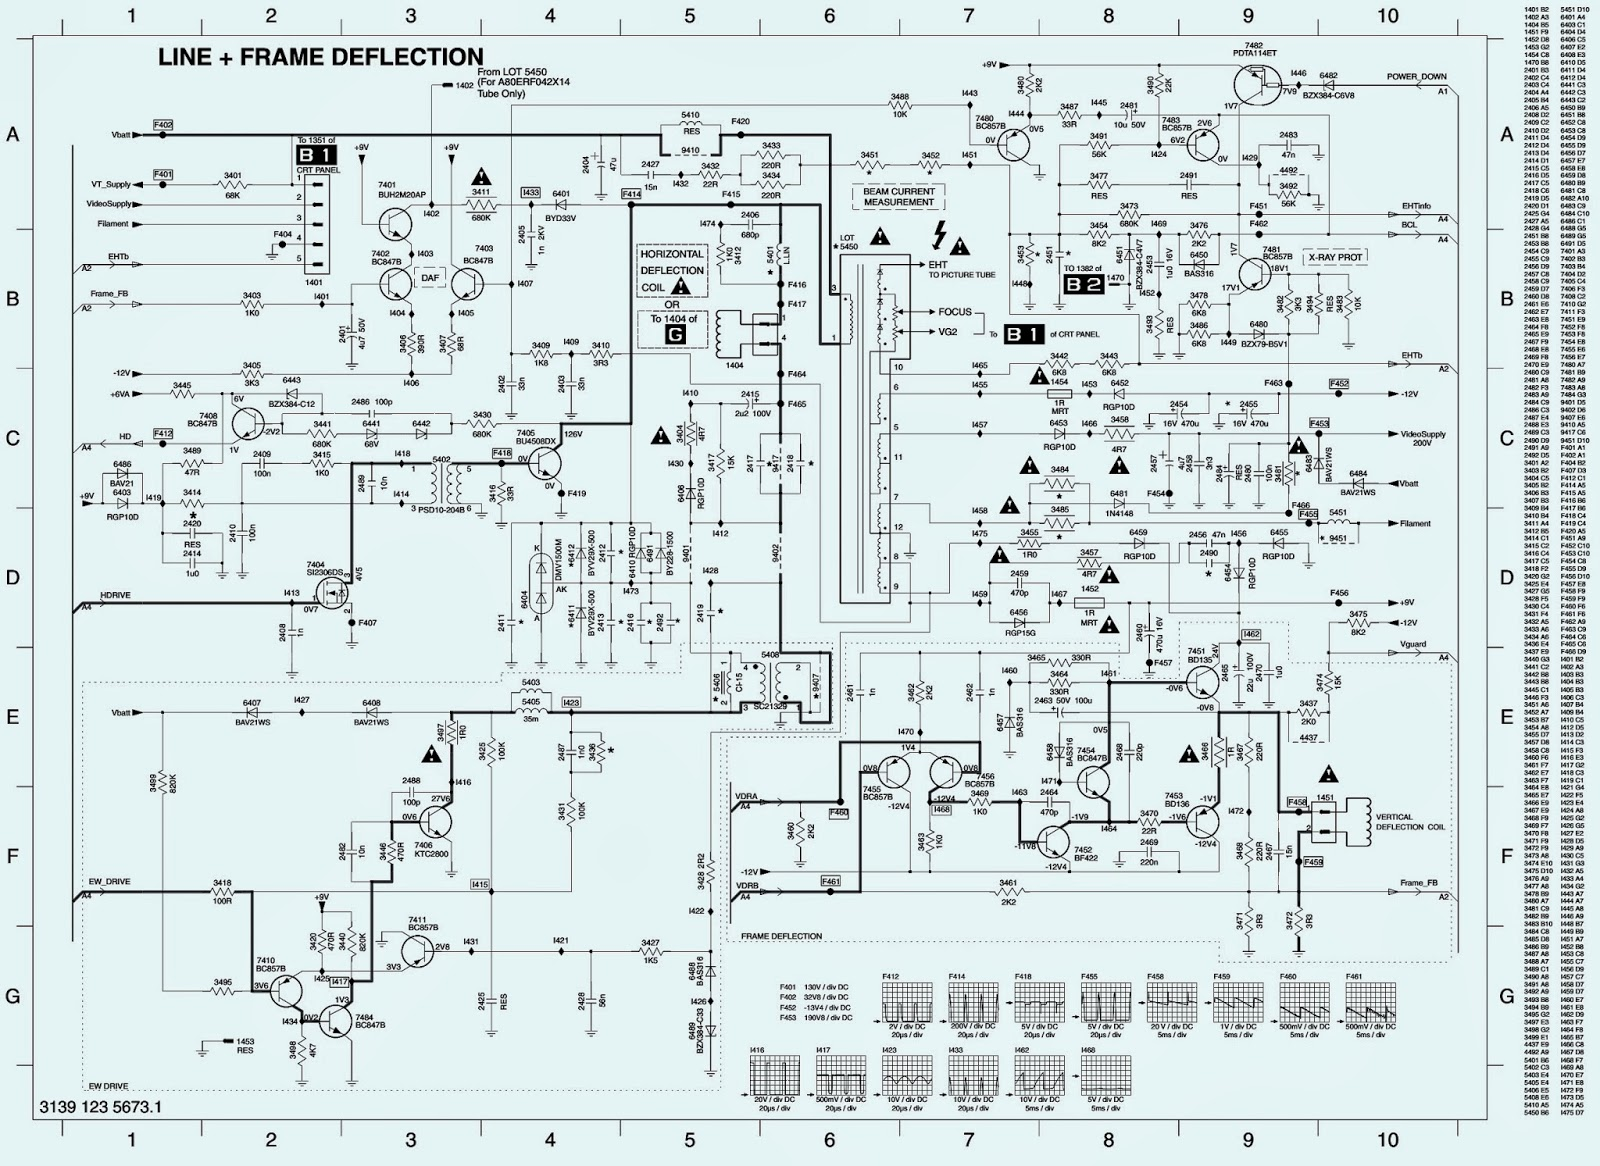 PHILIPS TV  L04A CHASSIS  POWER SUPPLY [SMPS] & SCAN OUT